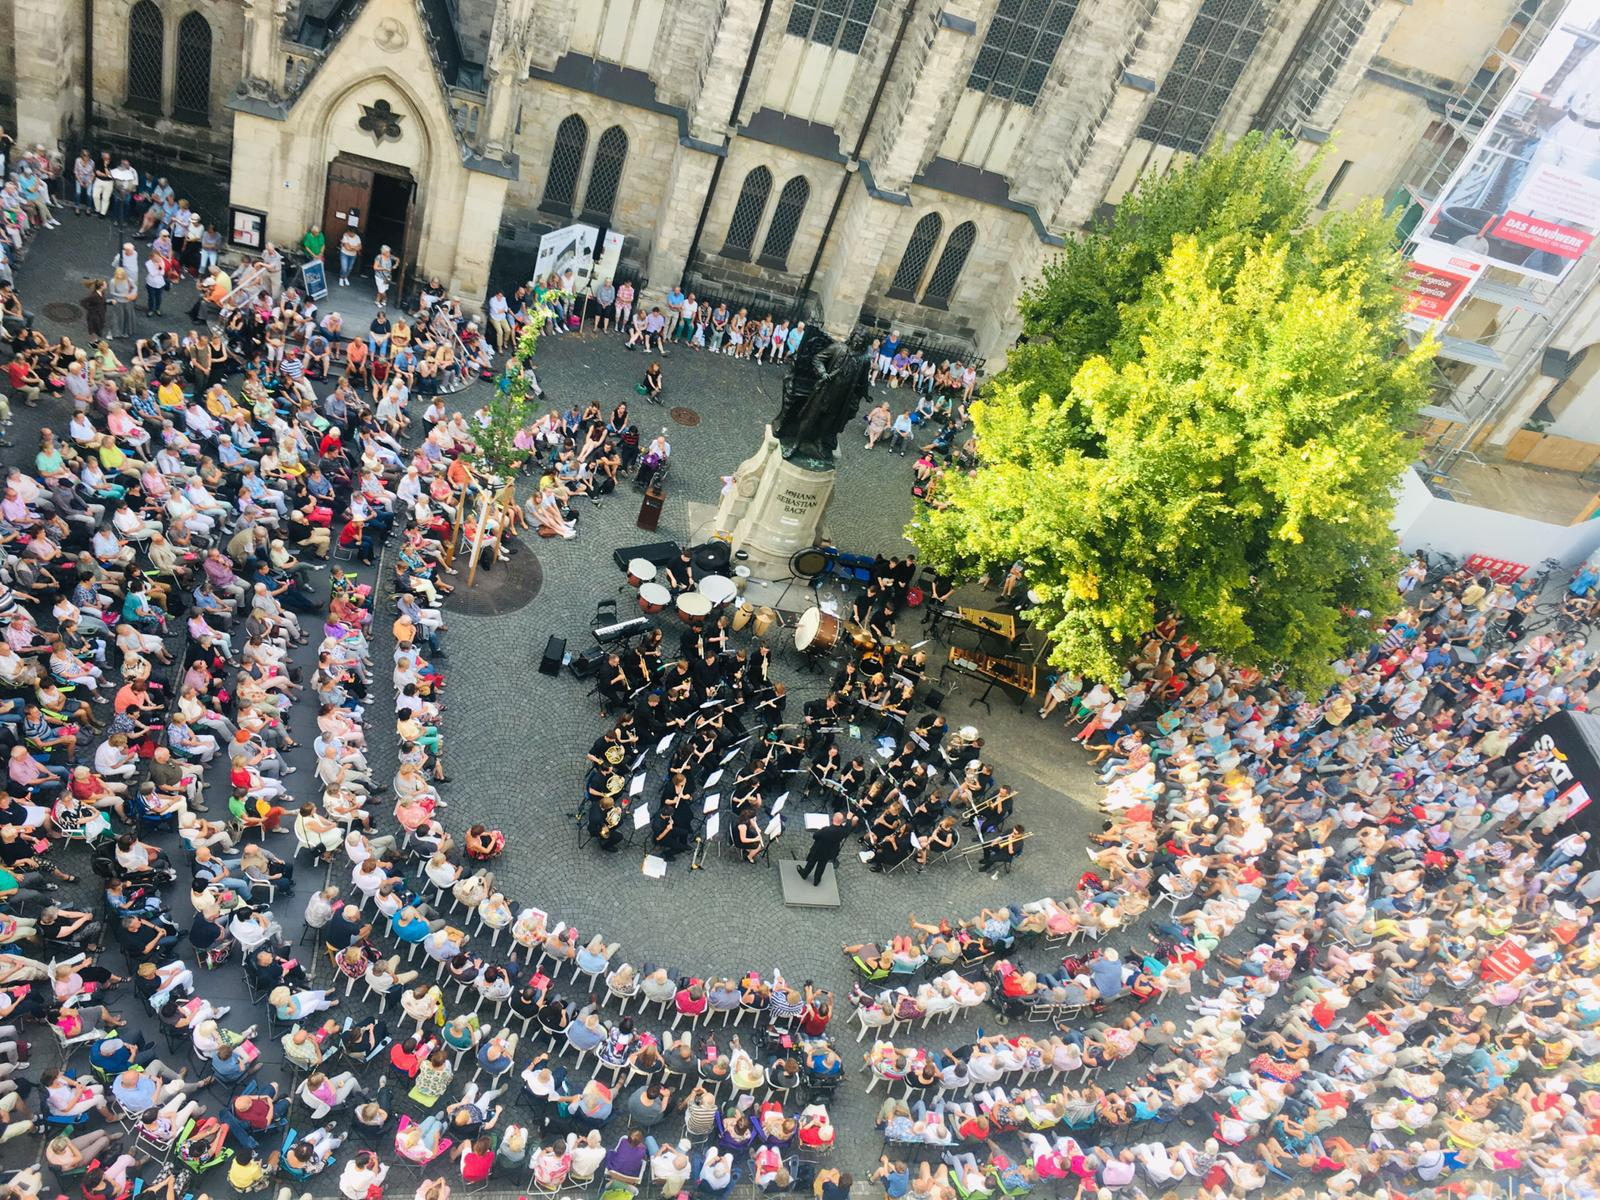 Orchestra perform to thousands of audience members, aerial view